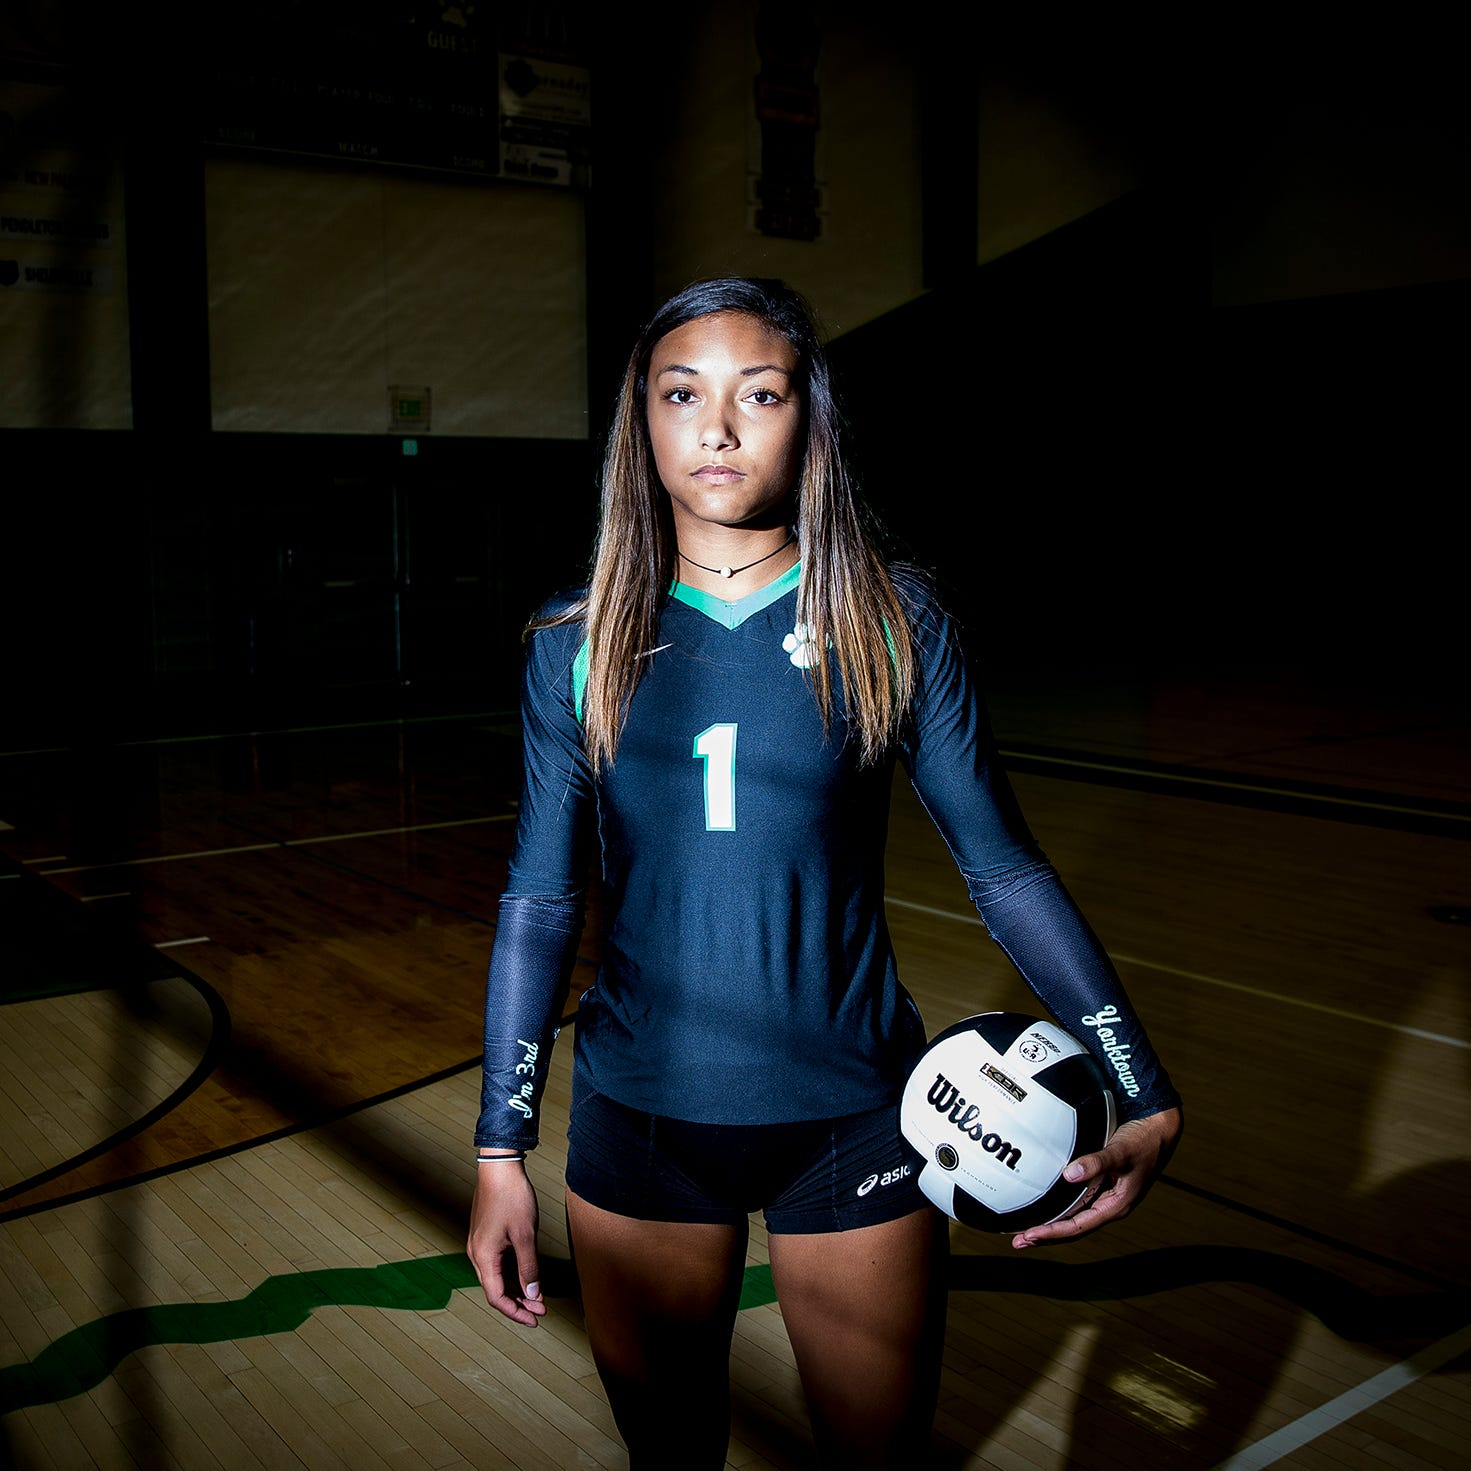 Volleyball star Kenzie Knuckles fought dad's death, immense pressure to get her life back